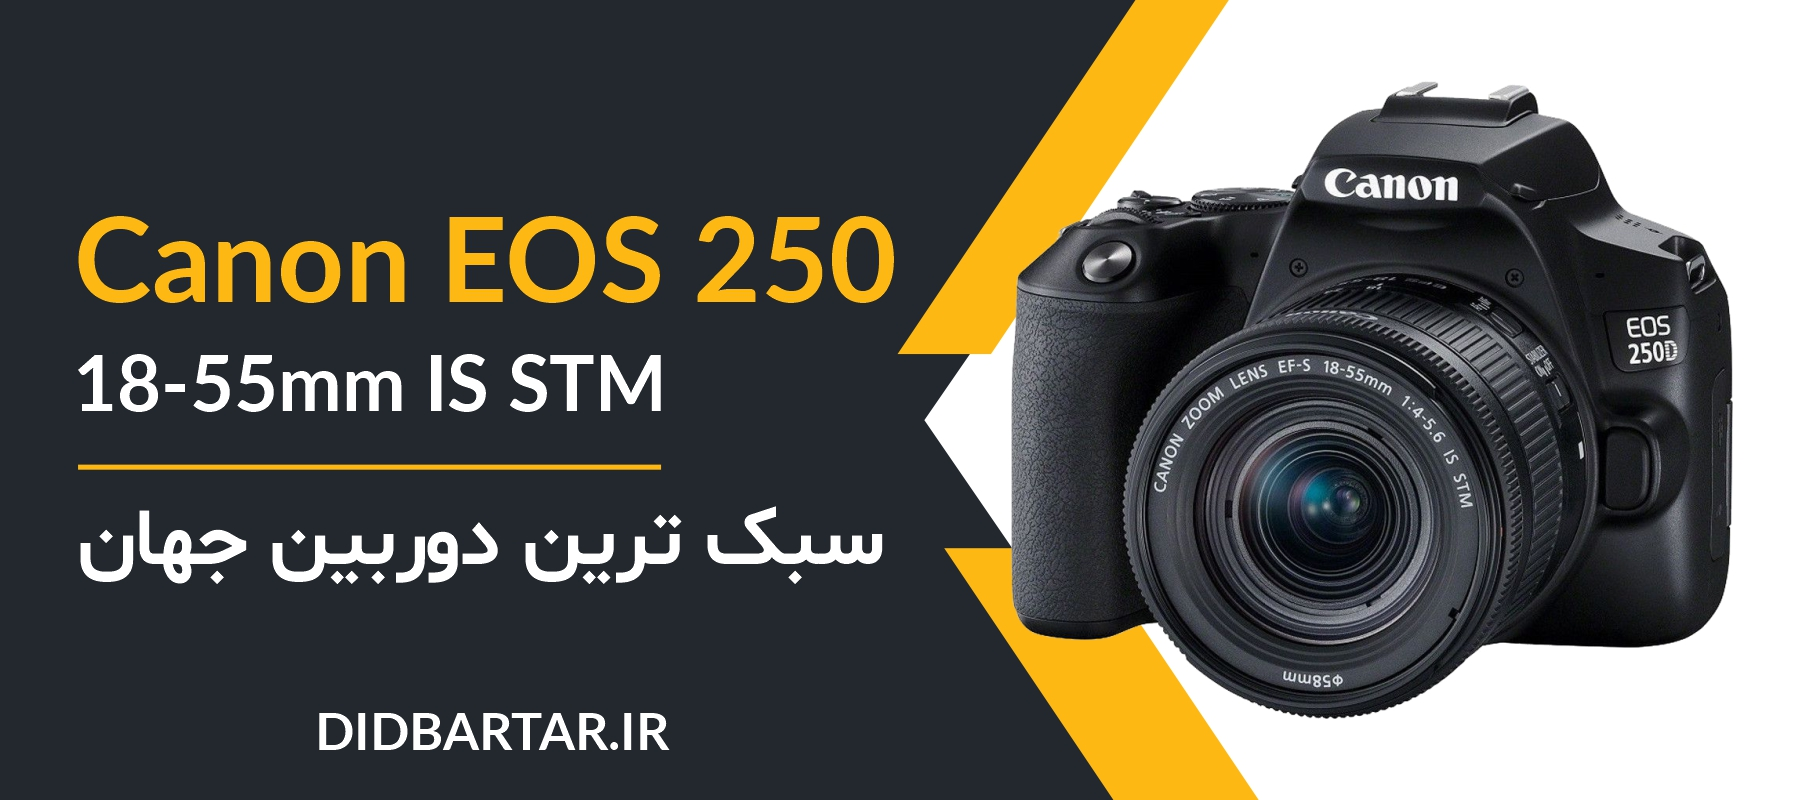 Canon EOS 250D Kit EF-S 18-55 mm f/4-5.6 IS STM